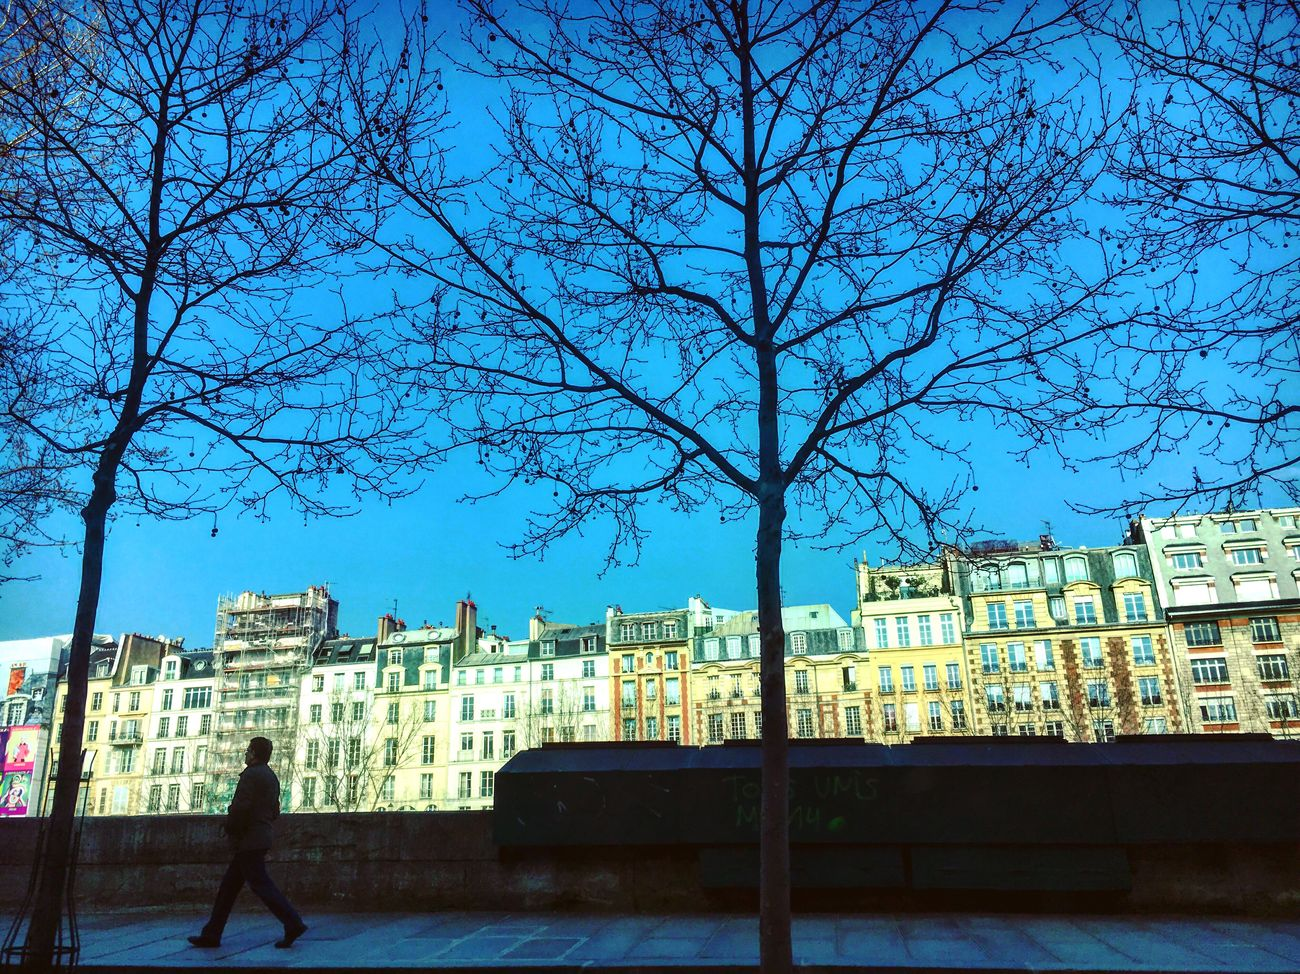 Quays Streetphotography Paris Quay Sunny Day Blue Sky Buildings Light And Shadow Trees Walker City View  Cityscape Sunshine Mmaff From My Point Of View Eye4photography  EyeEm Gallery